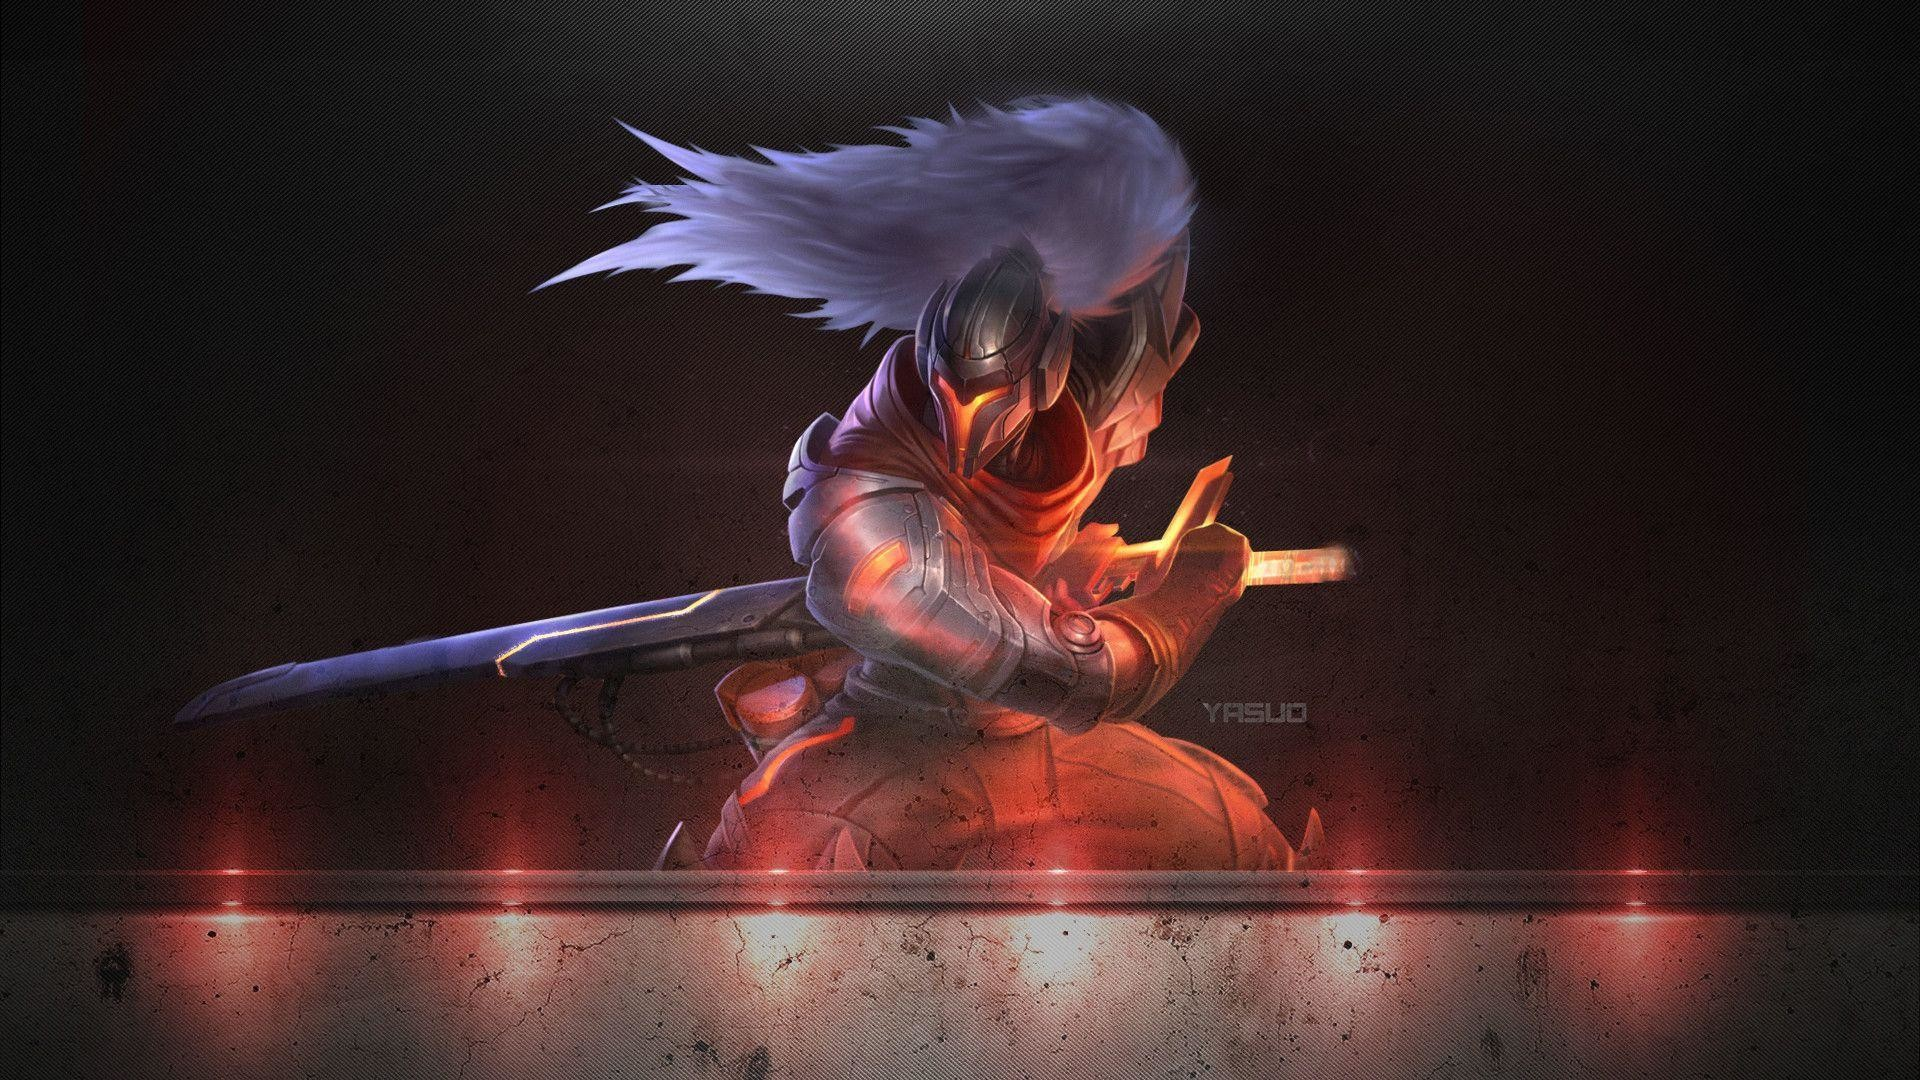 1920x1080 Yasuo Wallpapers - Wallpaper Cave